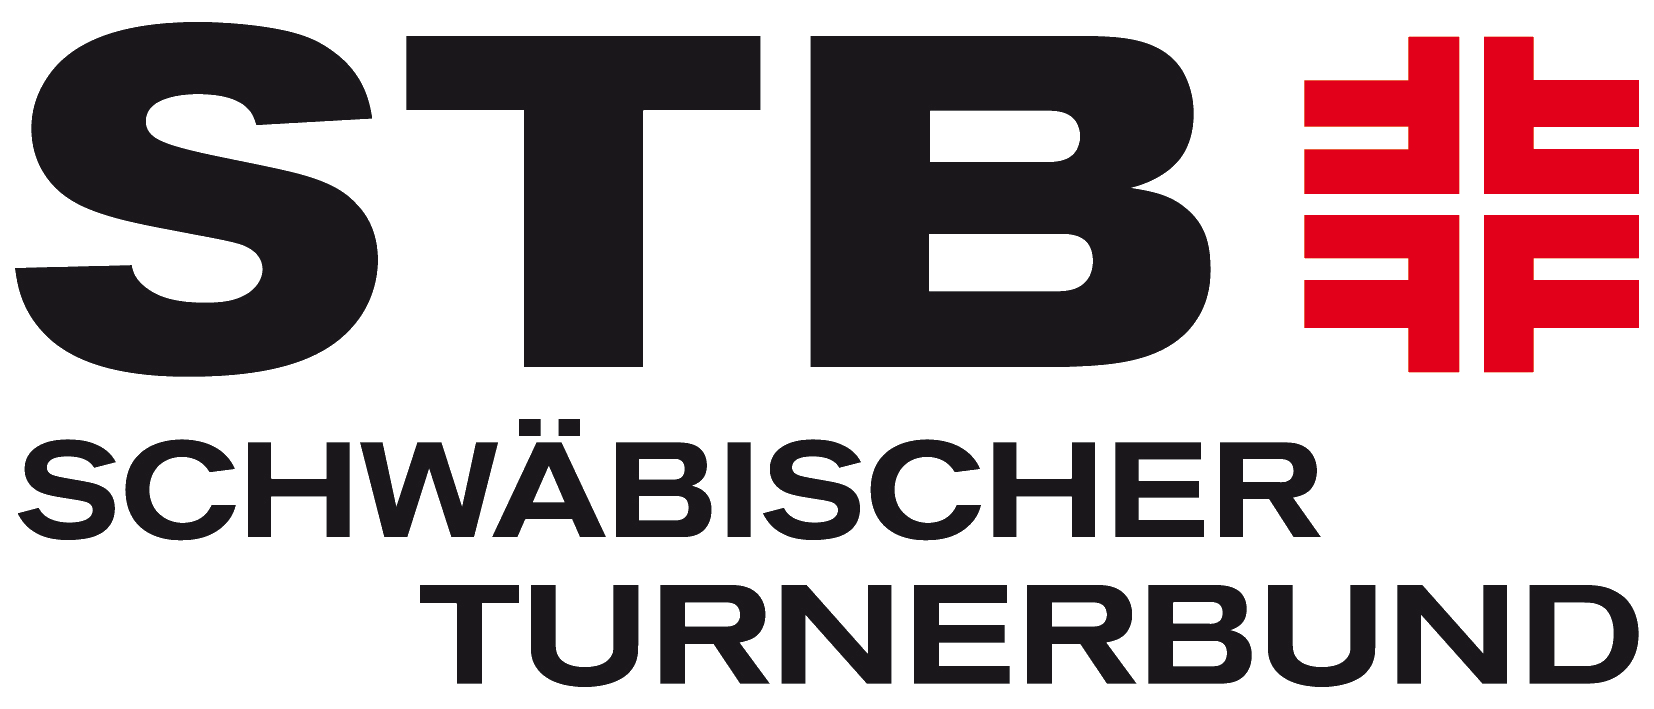 STB Logo neu transparent